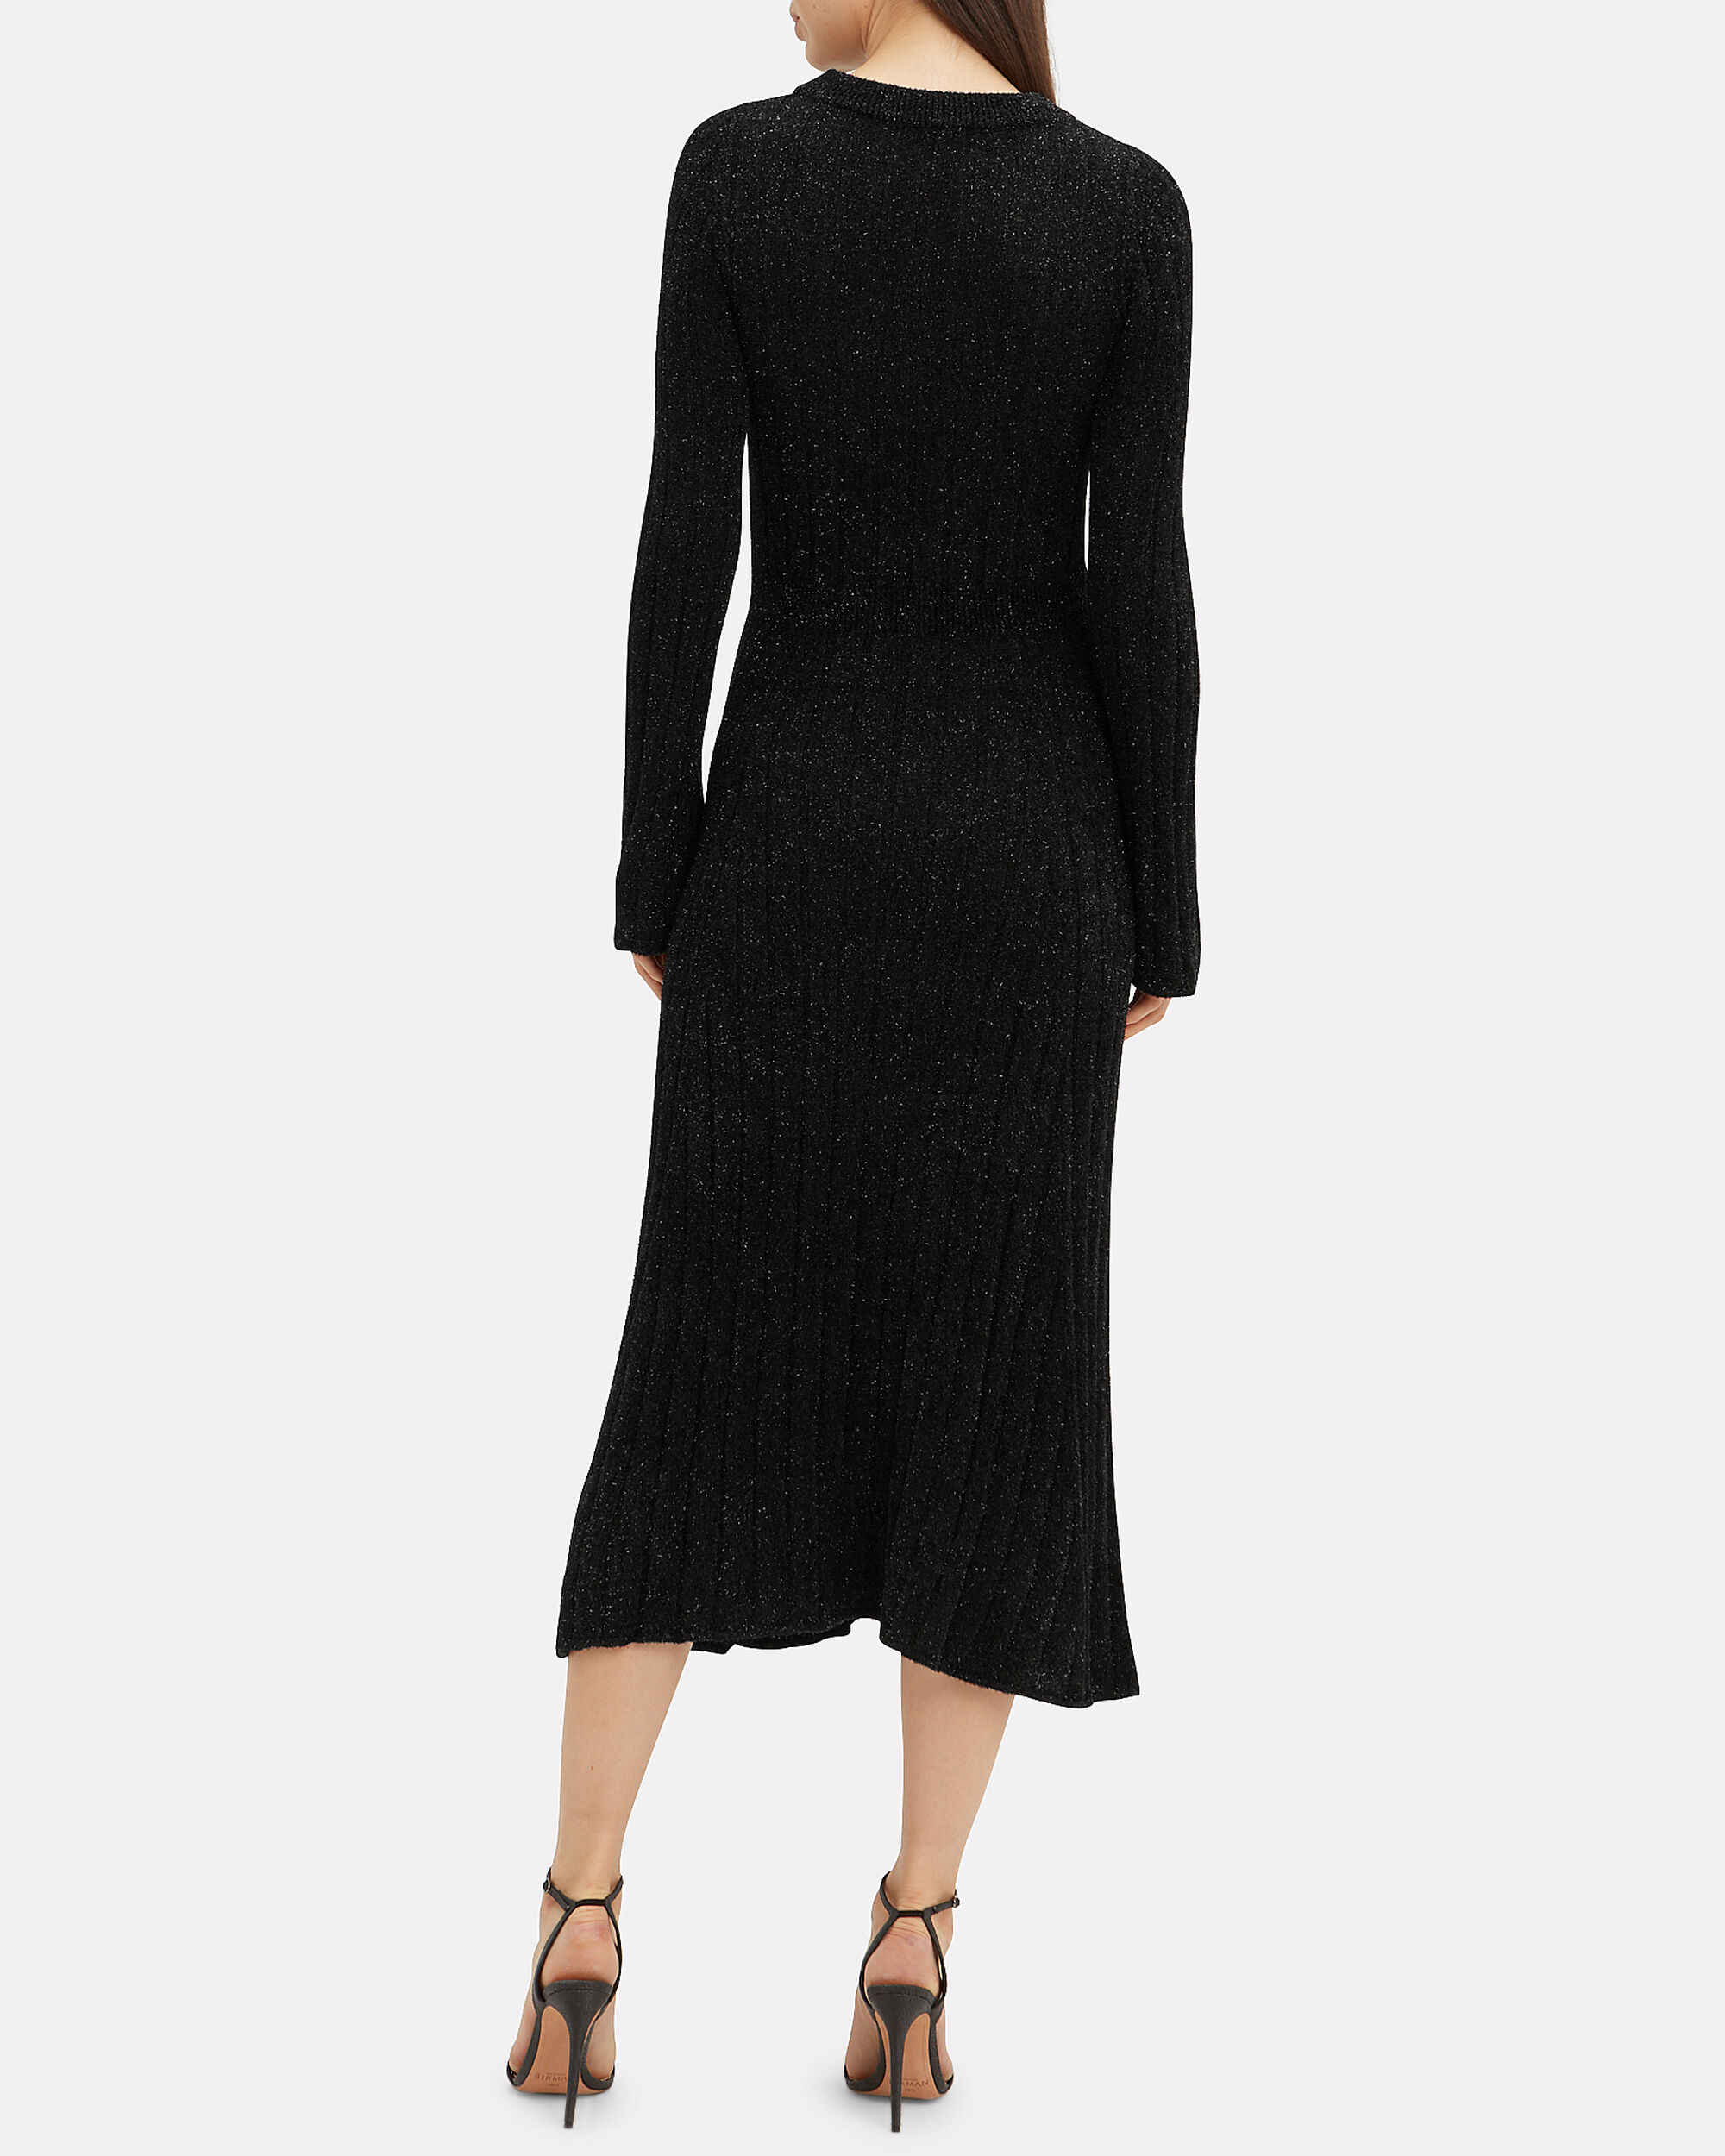 Shimmer Knit Midi Dress, BLACK, hi-res